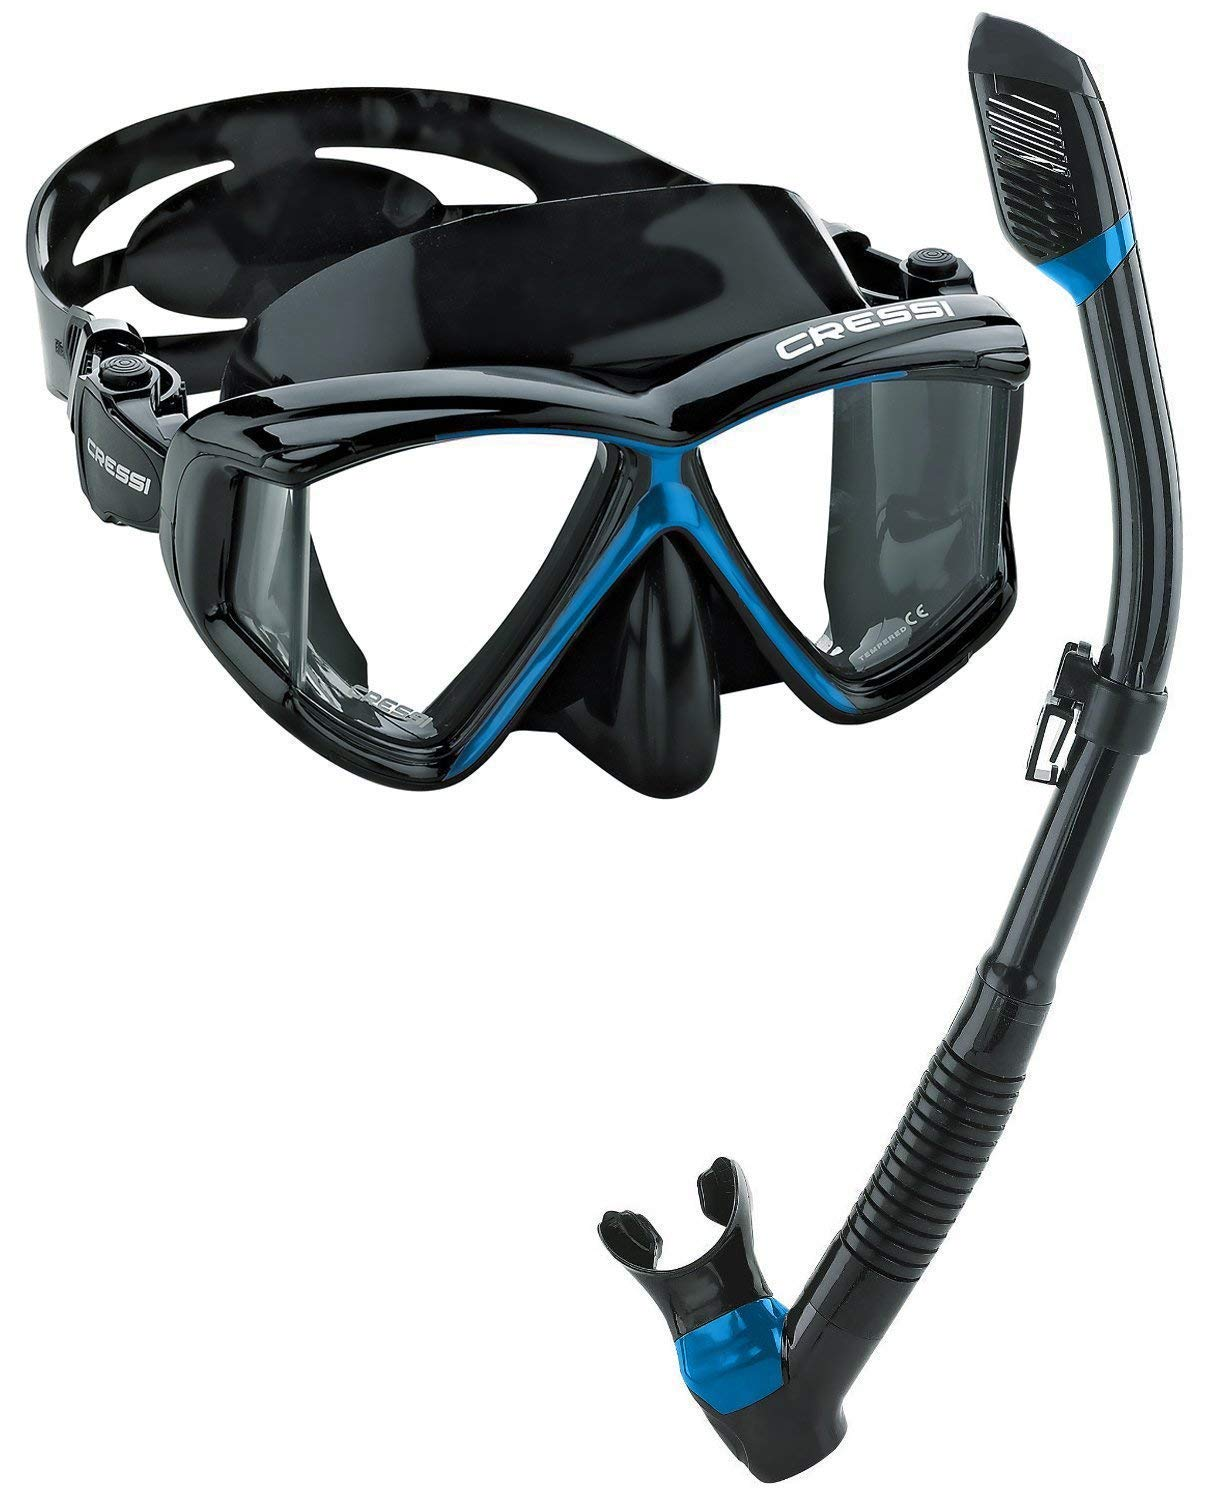 Cressi Italian Designed Liberty Quattro Metallic Panoramic View Tempered Glass Lens Premium Scuba Snorkeling Dive Mask Dry Snorkel Set (Black/Blue)